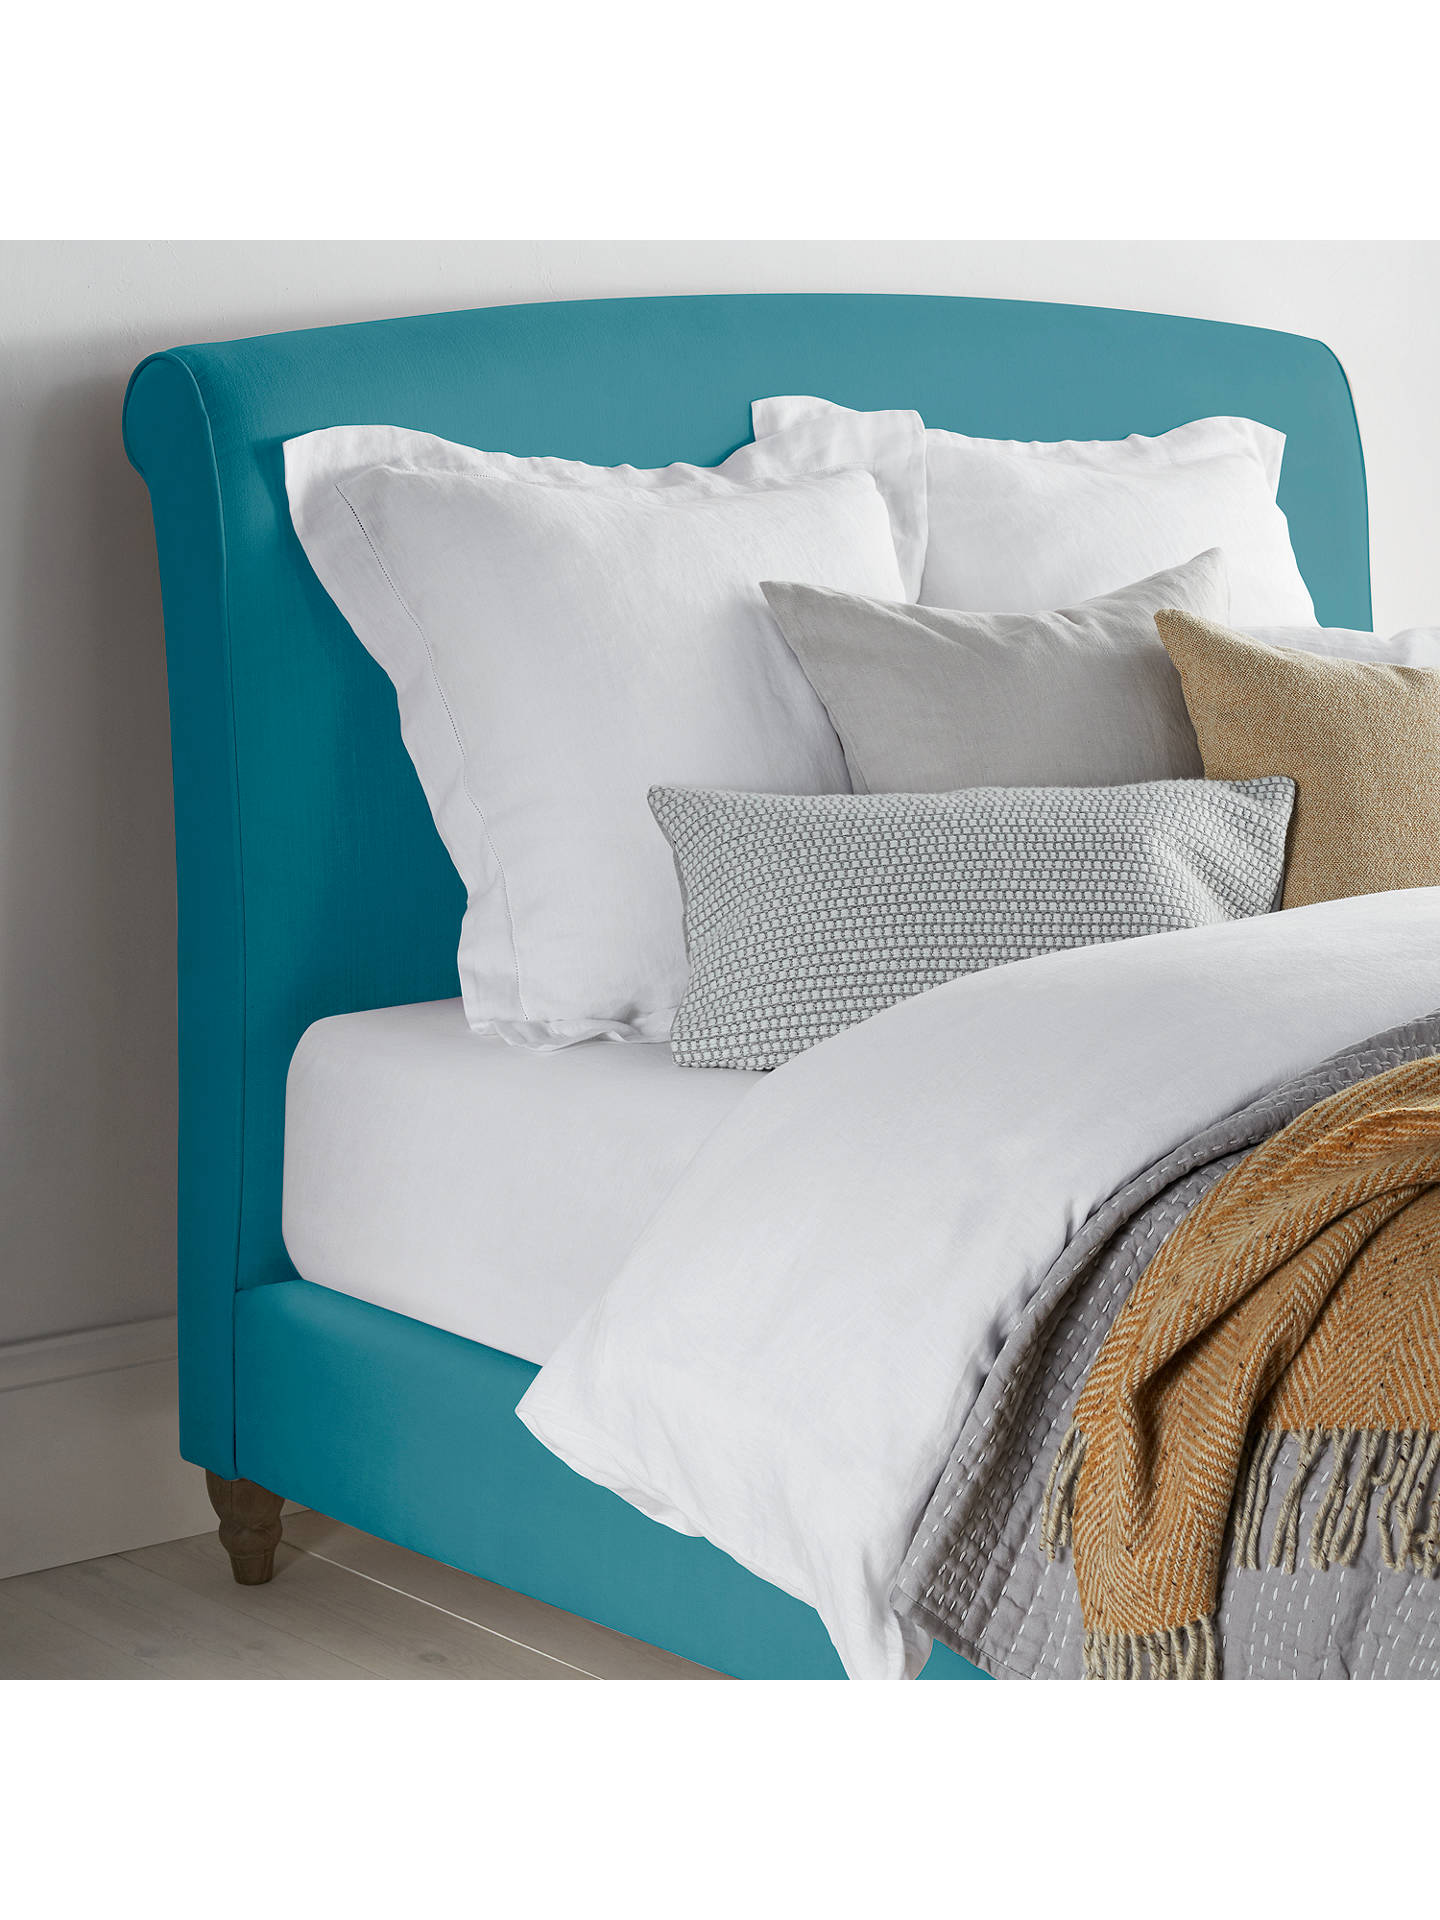 Buy Fudge Bed Frame by Loaf at John Lewis in Clever Velvet, Super King Size, Belize Online at johnlewis.com